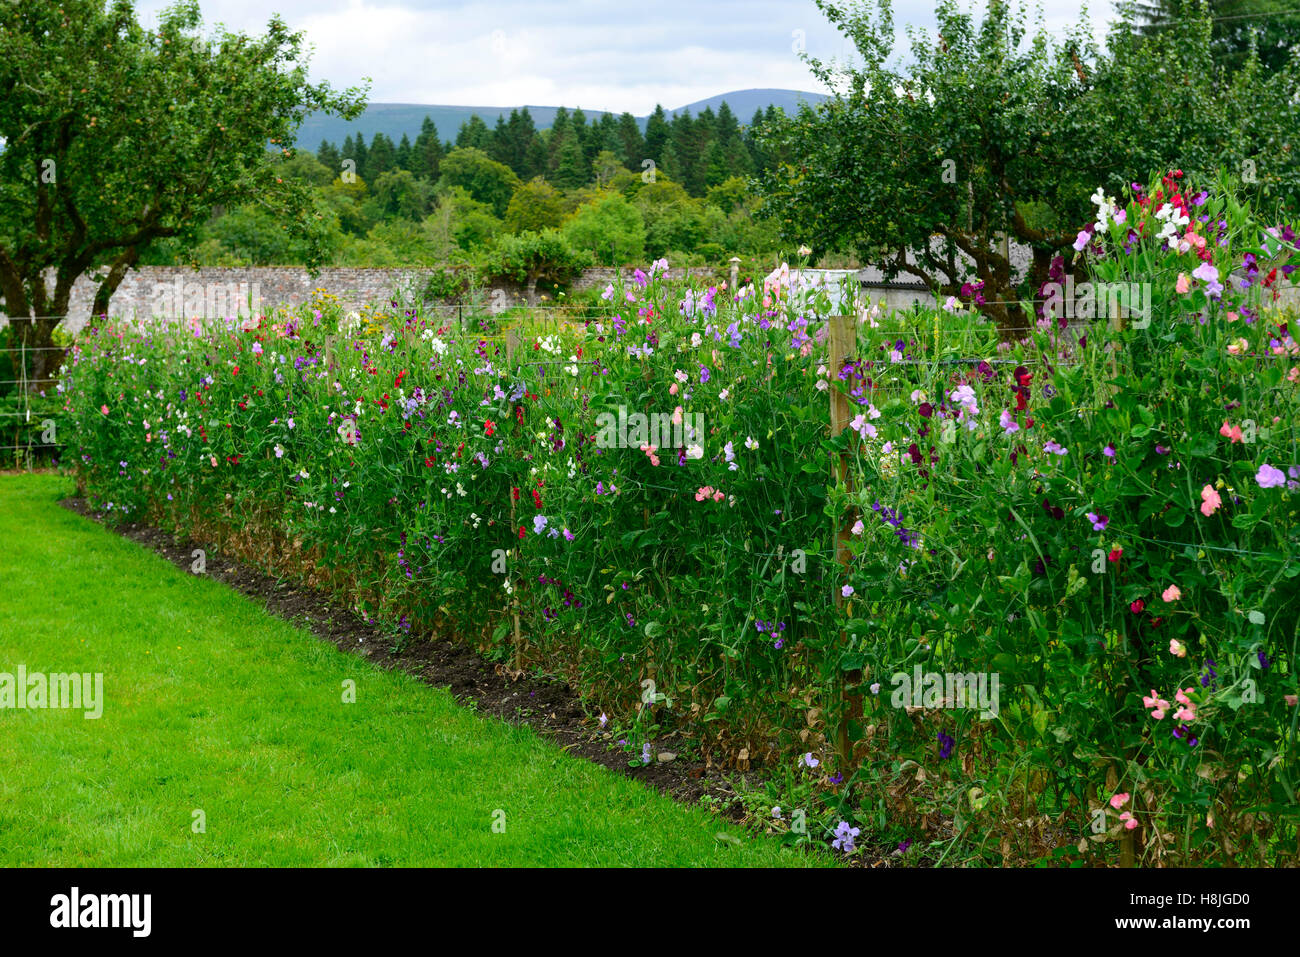 Lathyrus Sweet Peas Pea Grow Growing Up Fence Fencing Plant